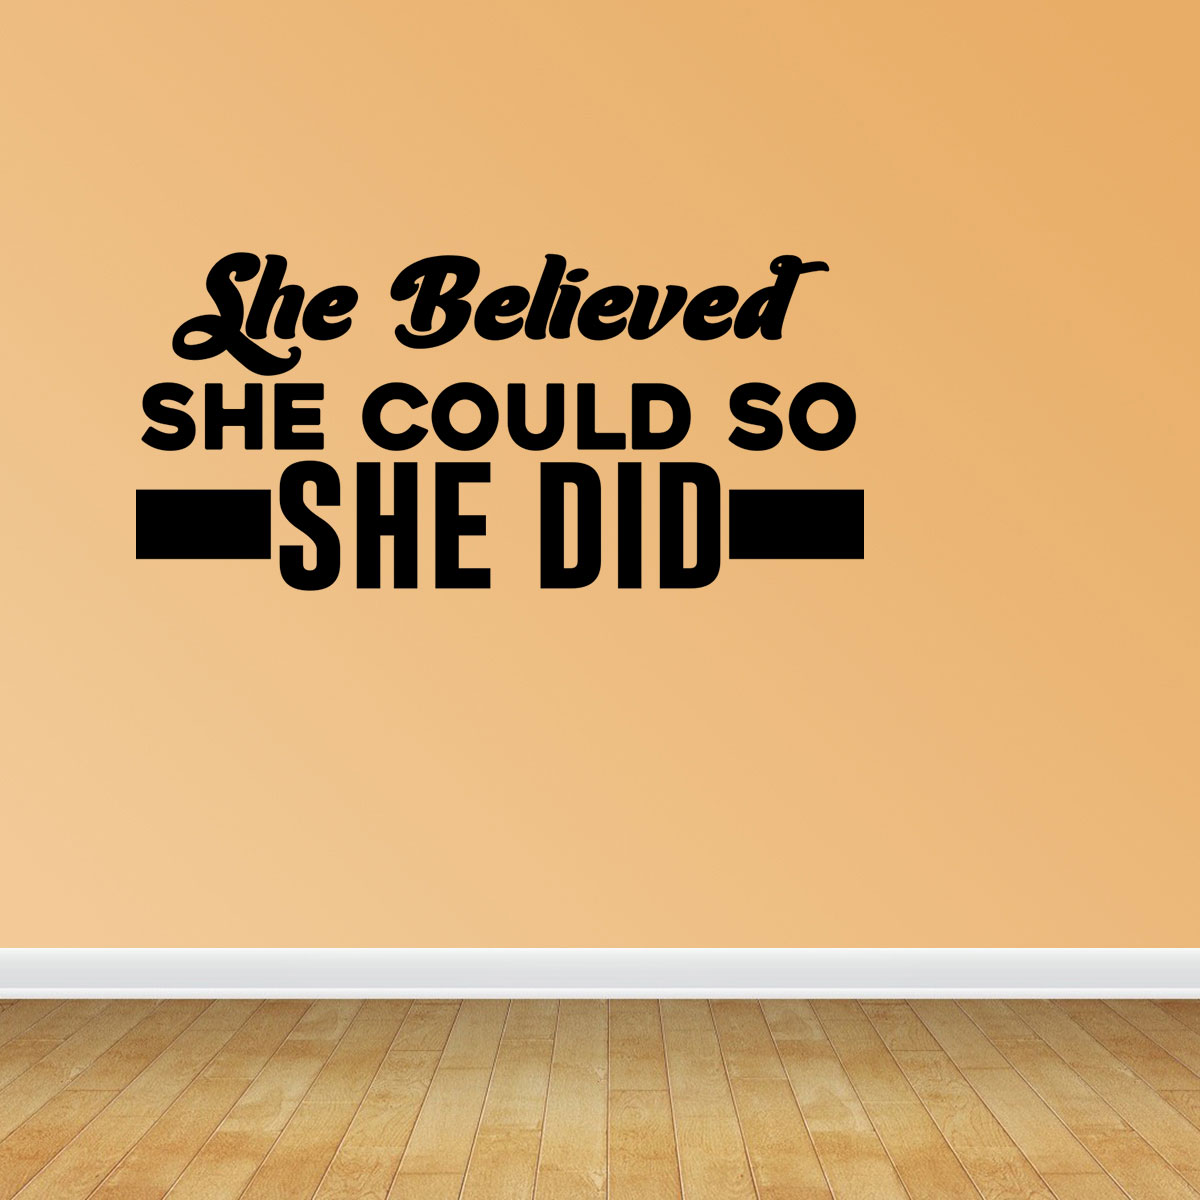 She Believed She Could So She Did Cute Vinyl Wall Art Decal Home ...